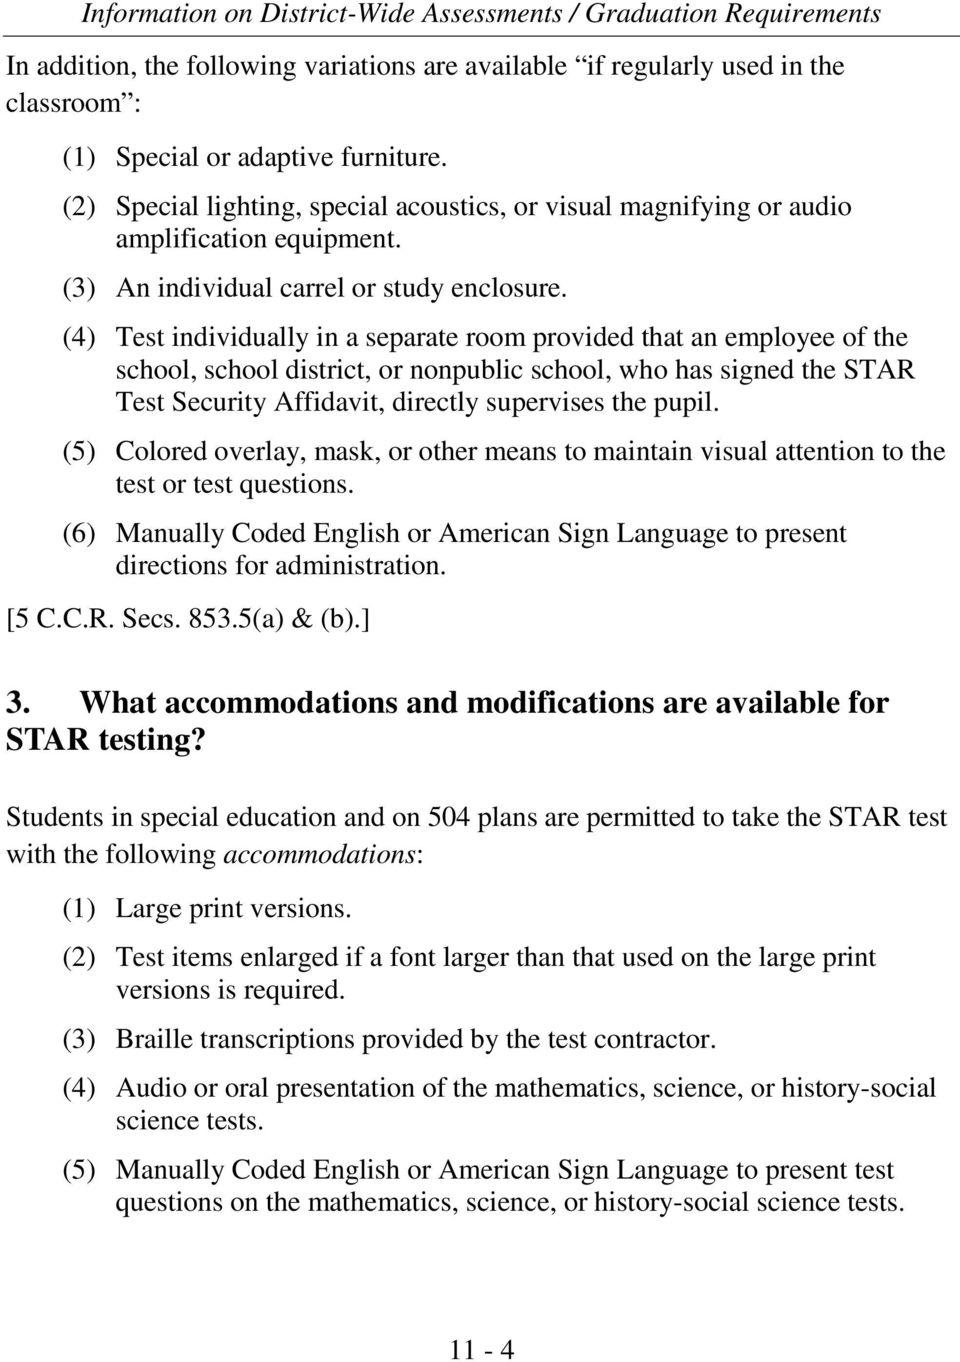 (4) Test individually in a separate room provided that an employee of the school, school district, or nonpublic school, who has signed the STAR Test Security Affidavit, directly supervises the pupil.